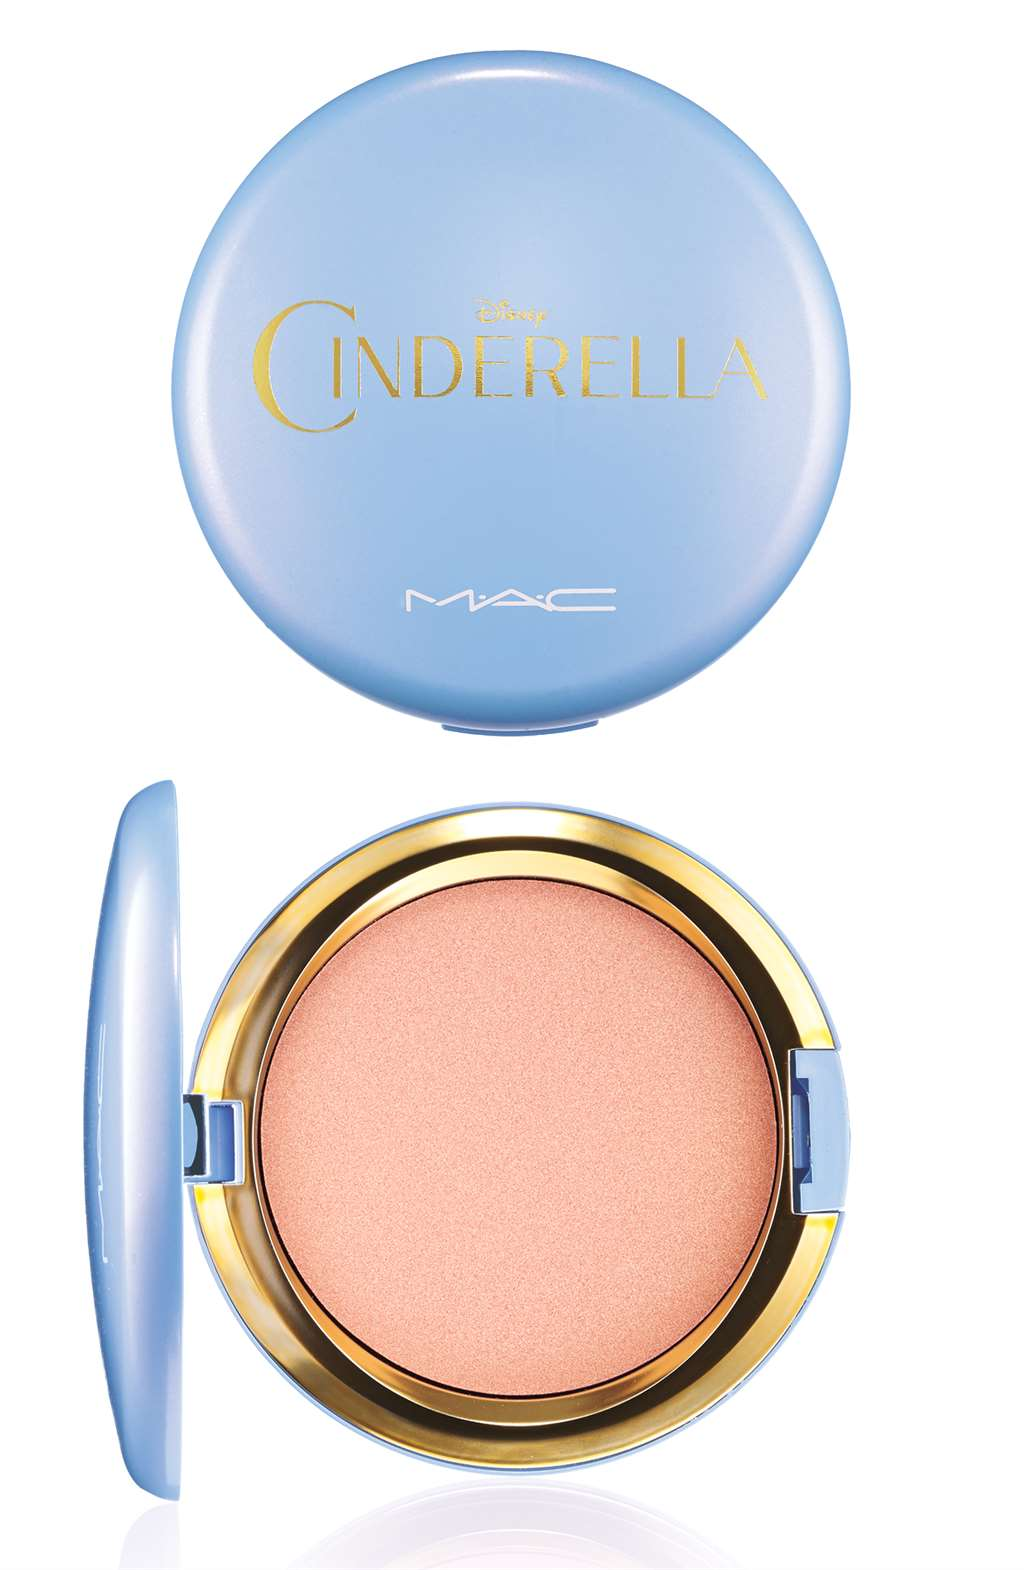 CINDERELLA_BEAUTY POWDER_MYSTERY PRINCESS_300